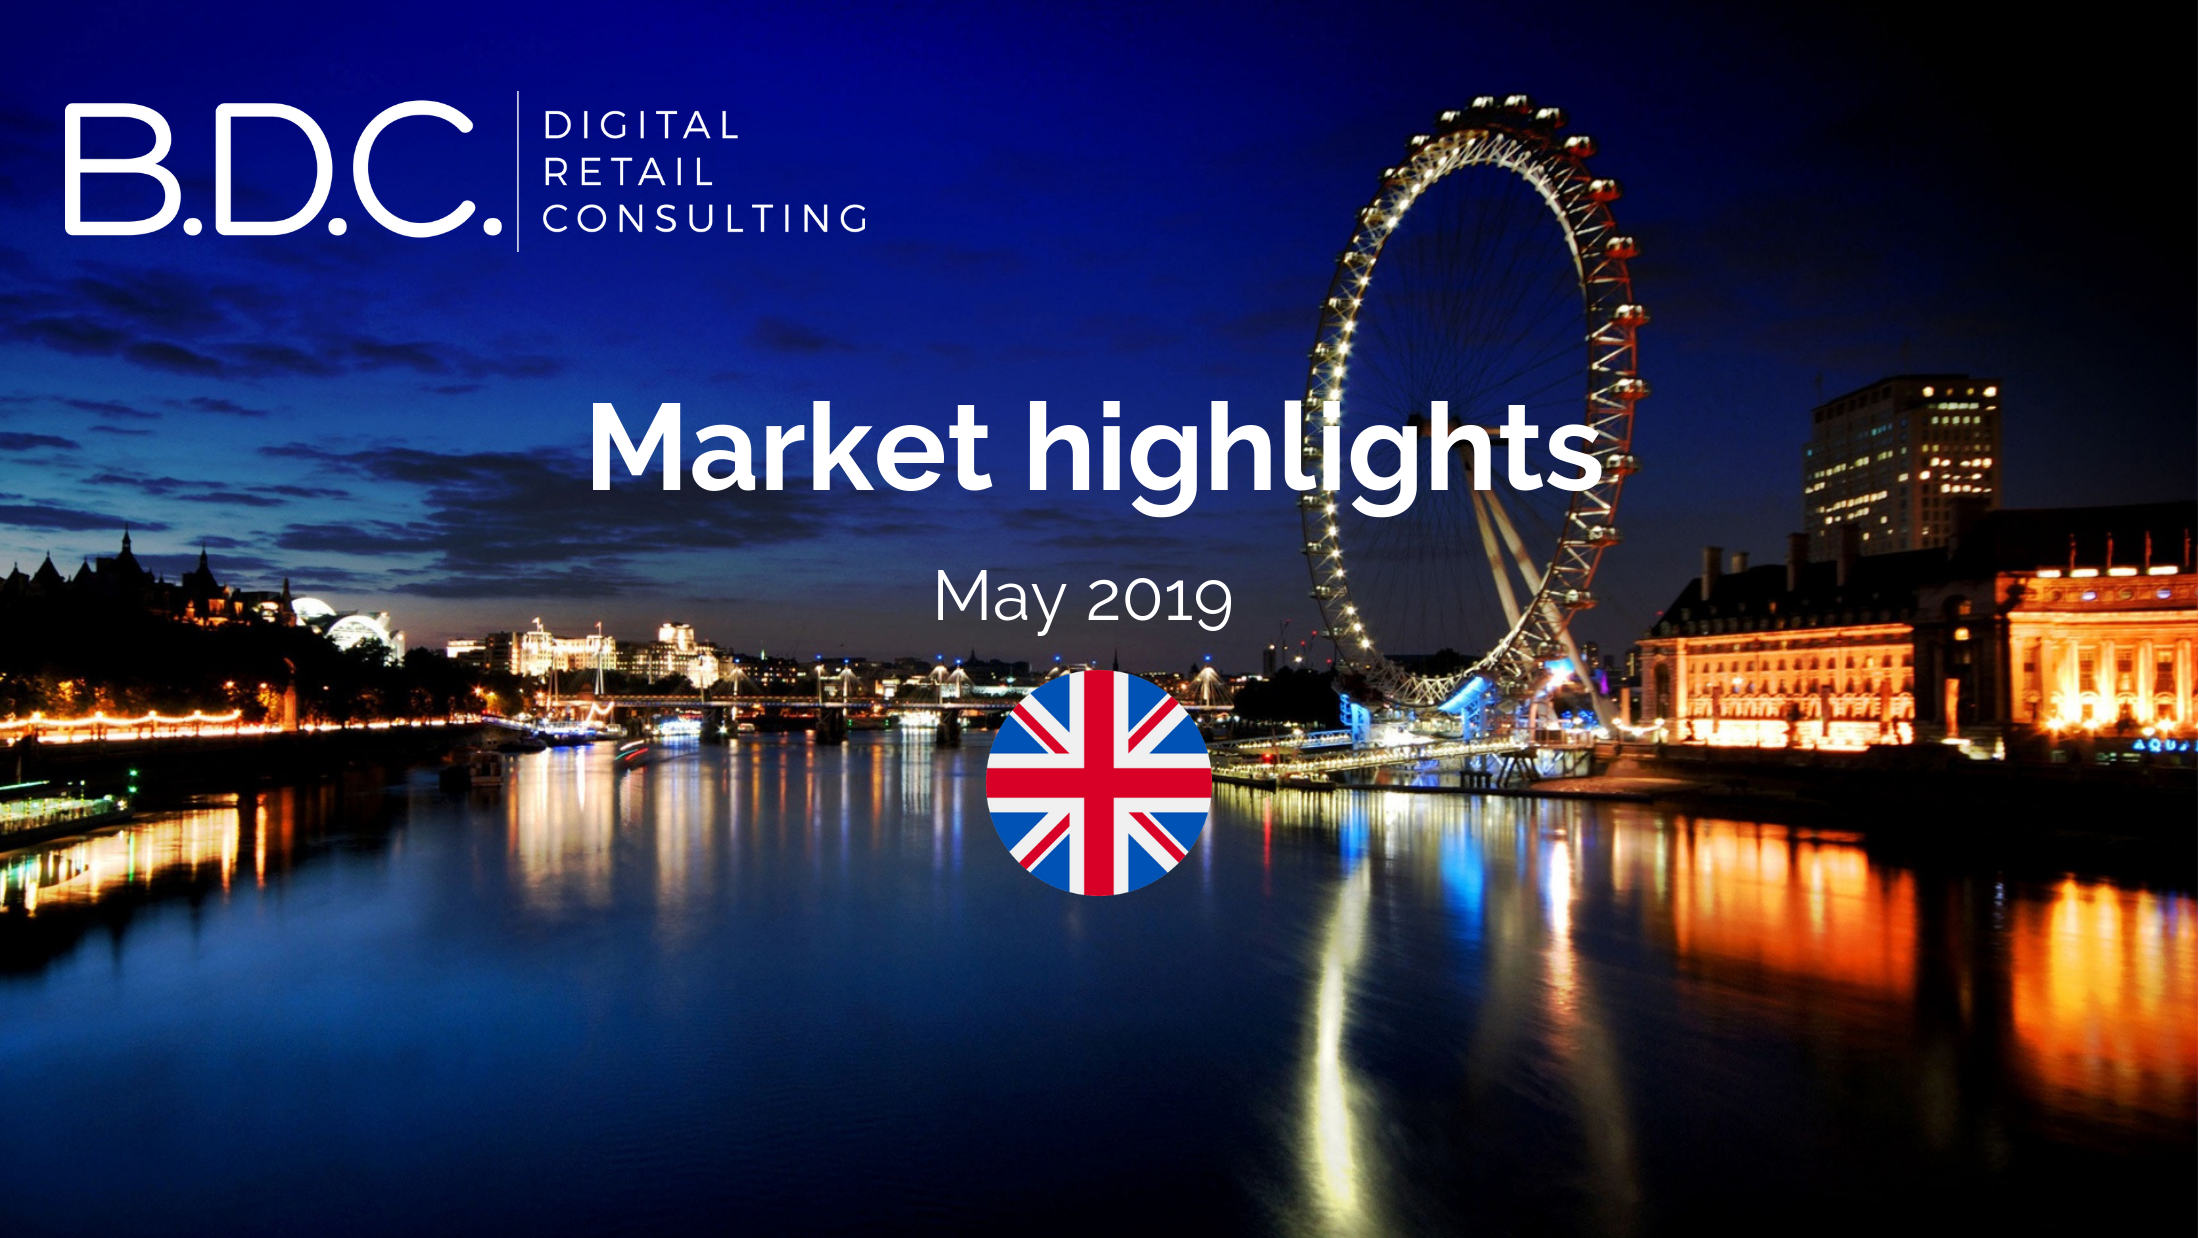 Trends News 3 - UK MARKET HIGHLIGHTS – MAY 2019